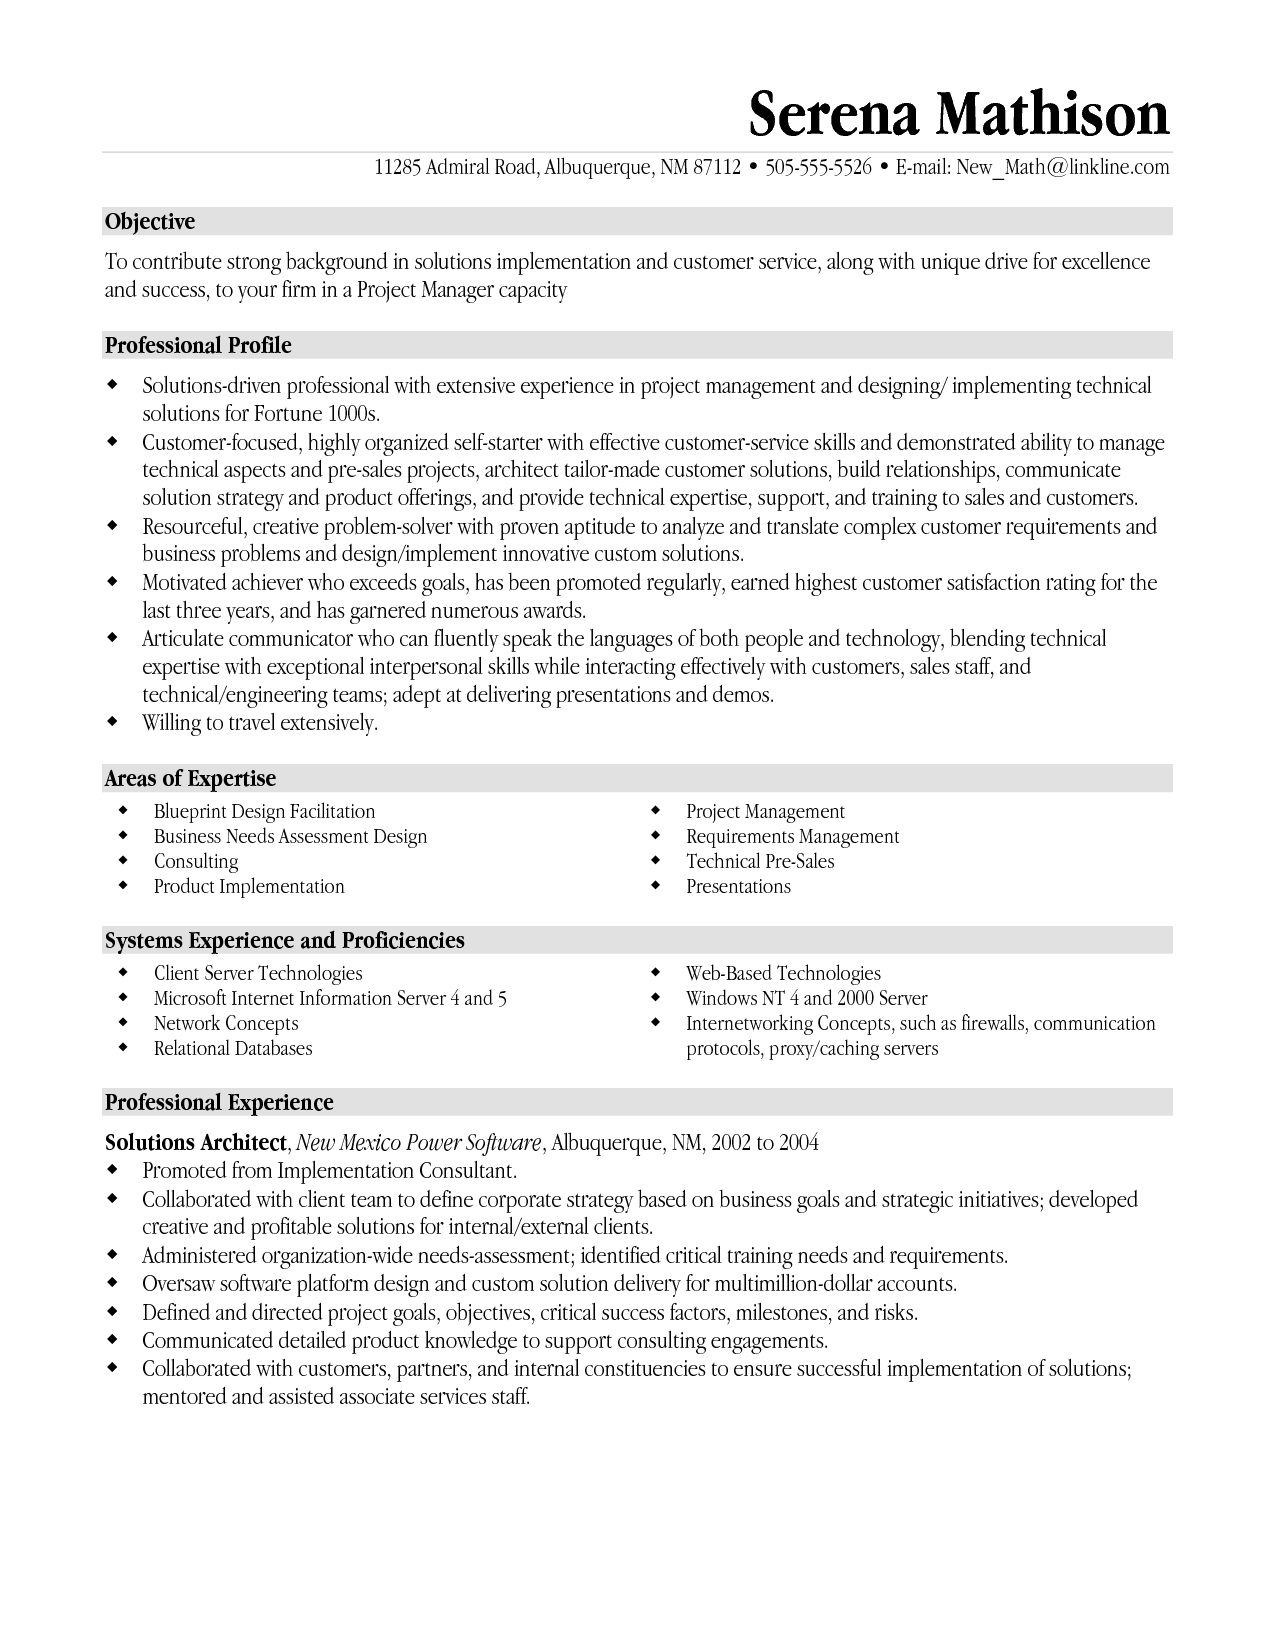 Resume For Project Manager Resume Templates Project Manager  Project Management Resume